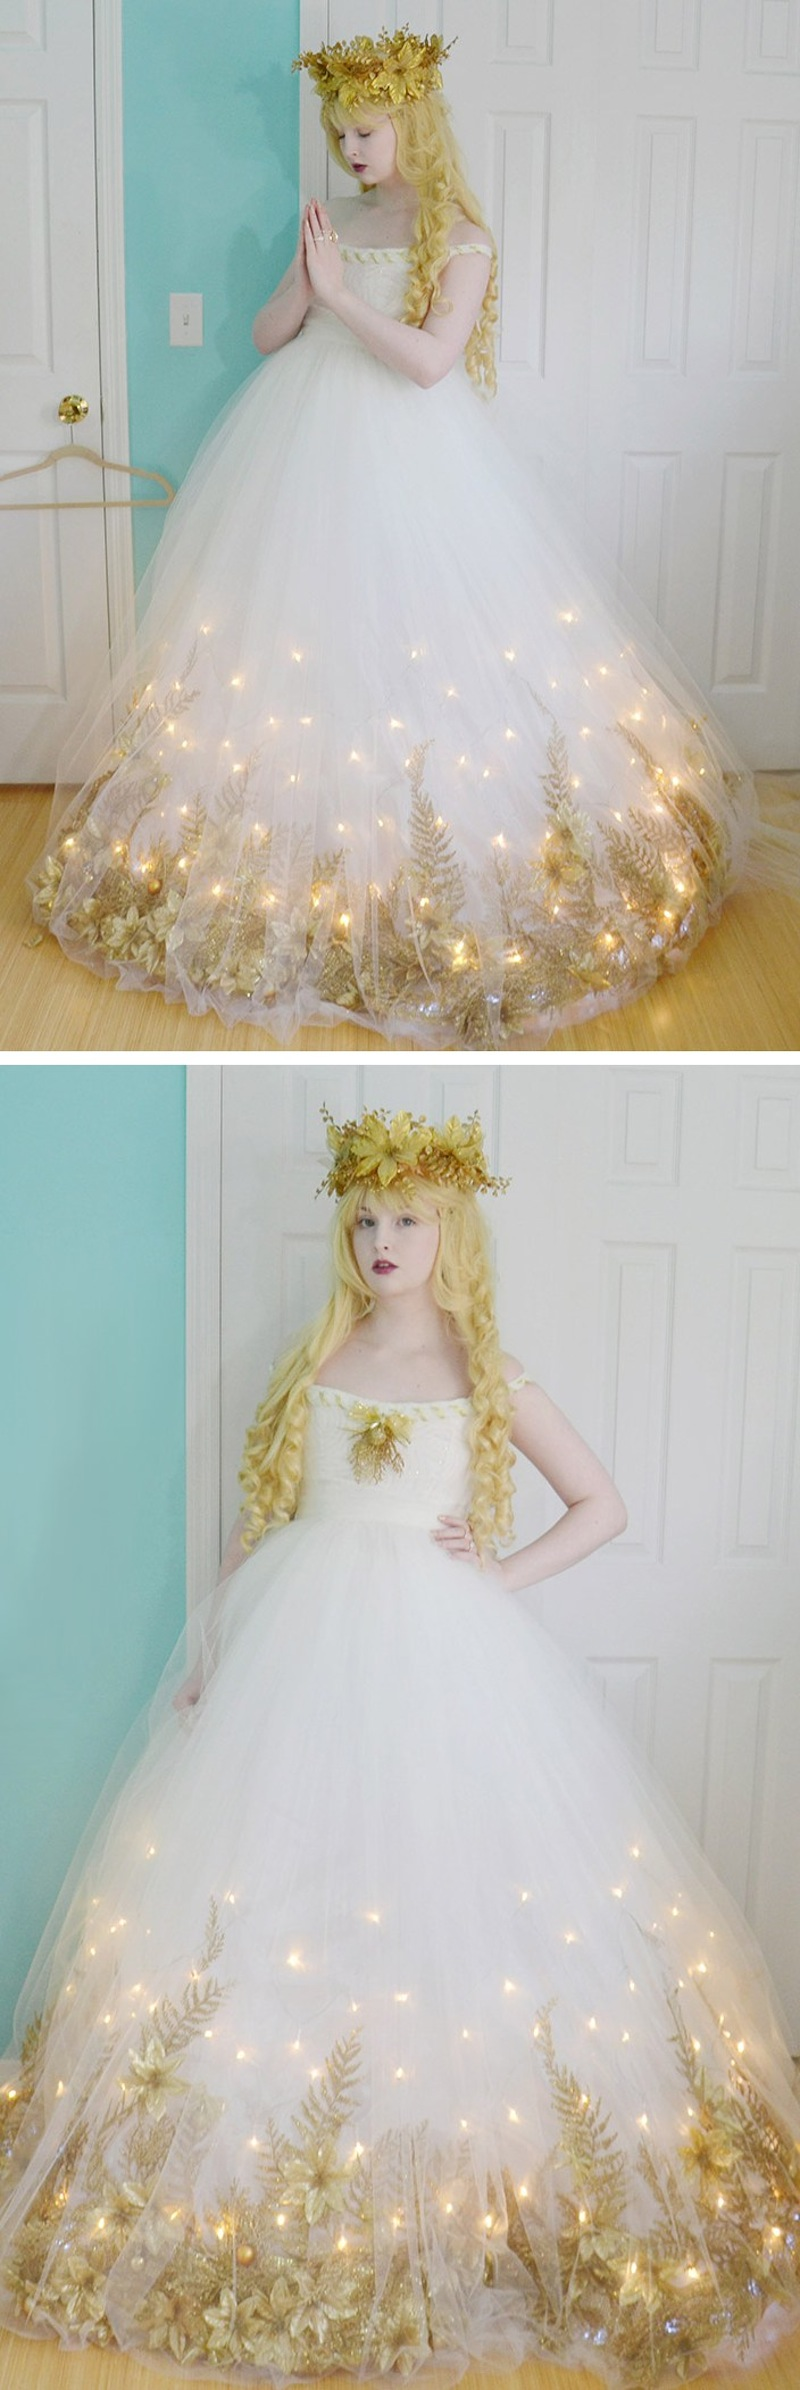 Diy light up fairy dress